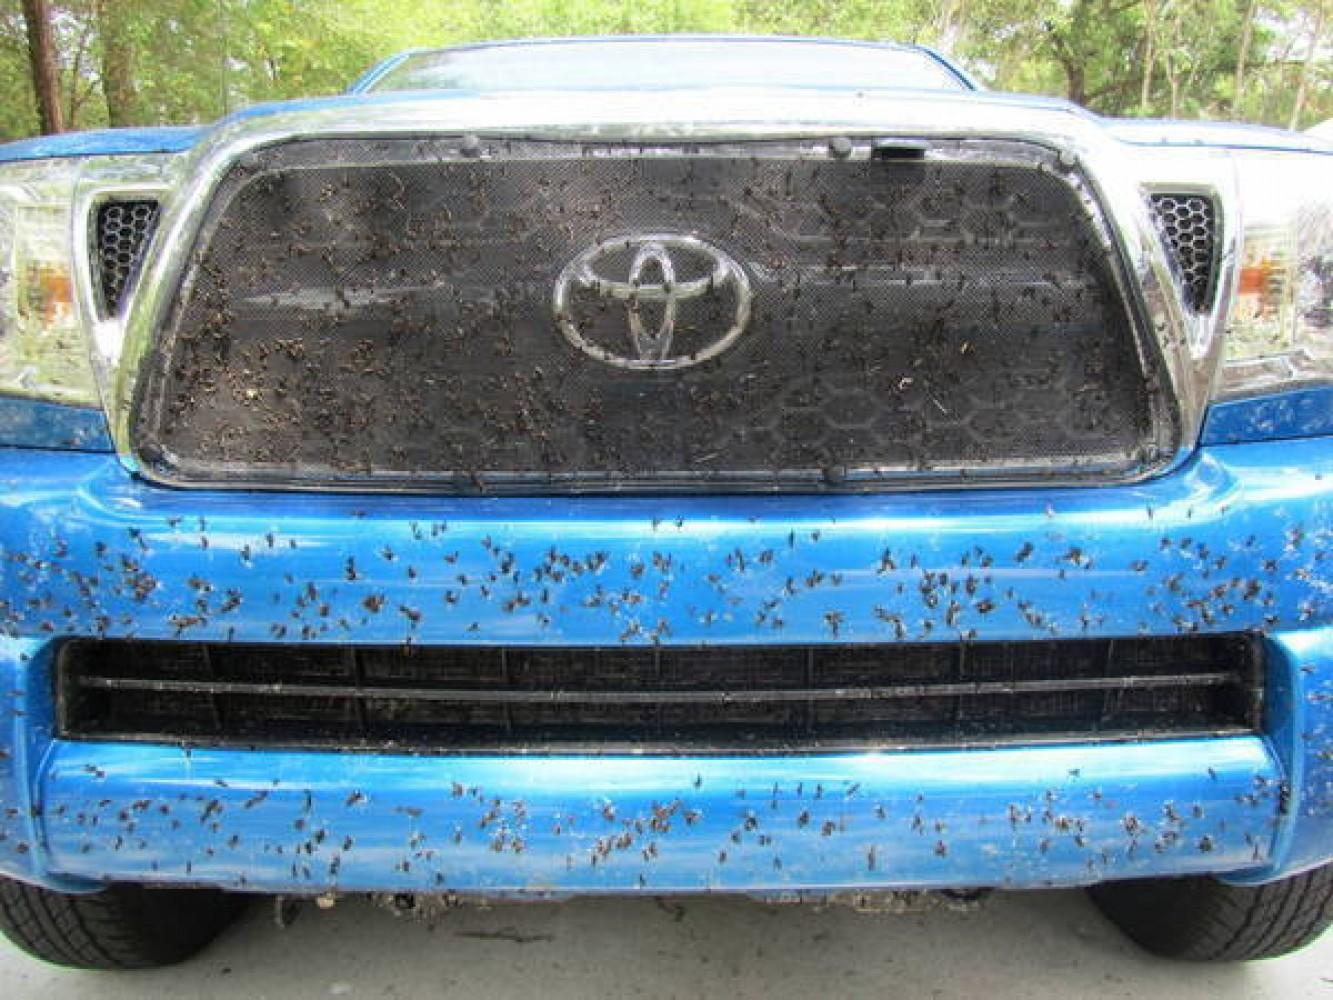 Save Your Paint! Remove Bug Guts Properly.